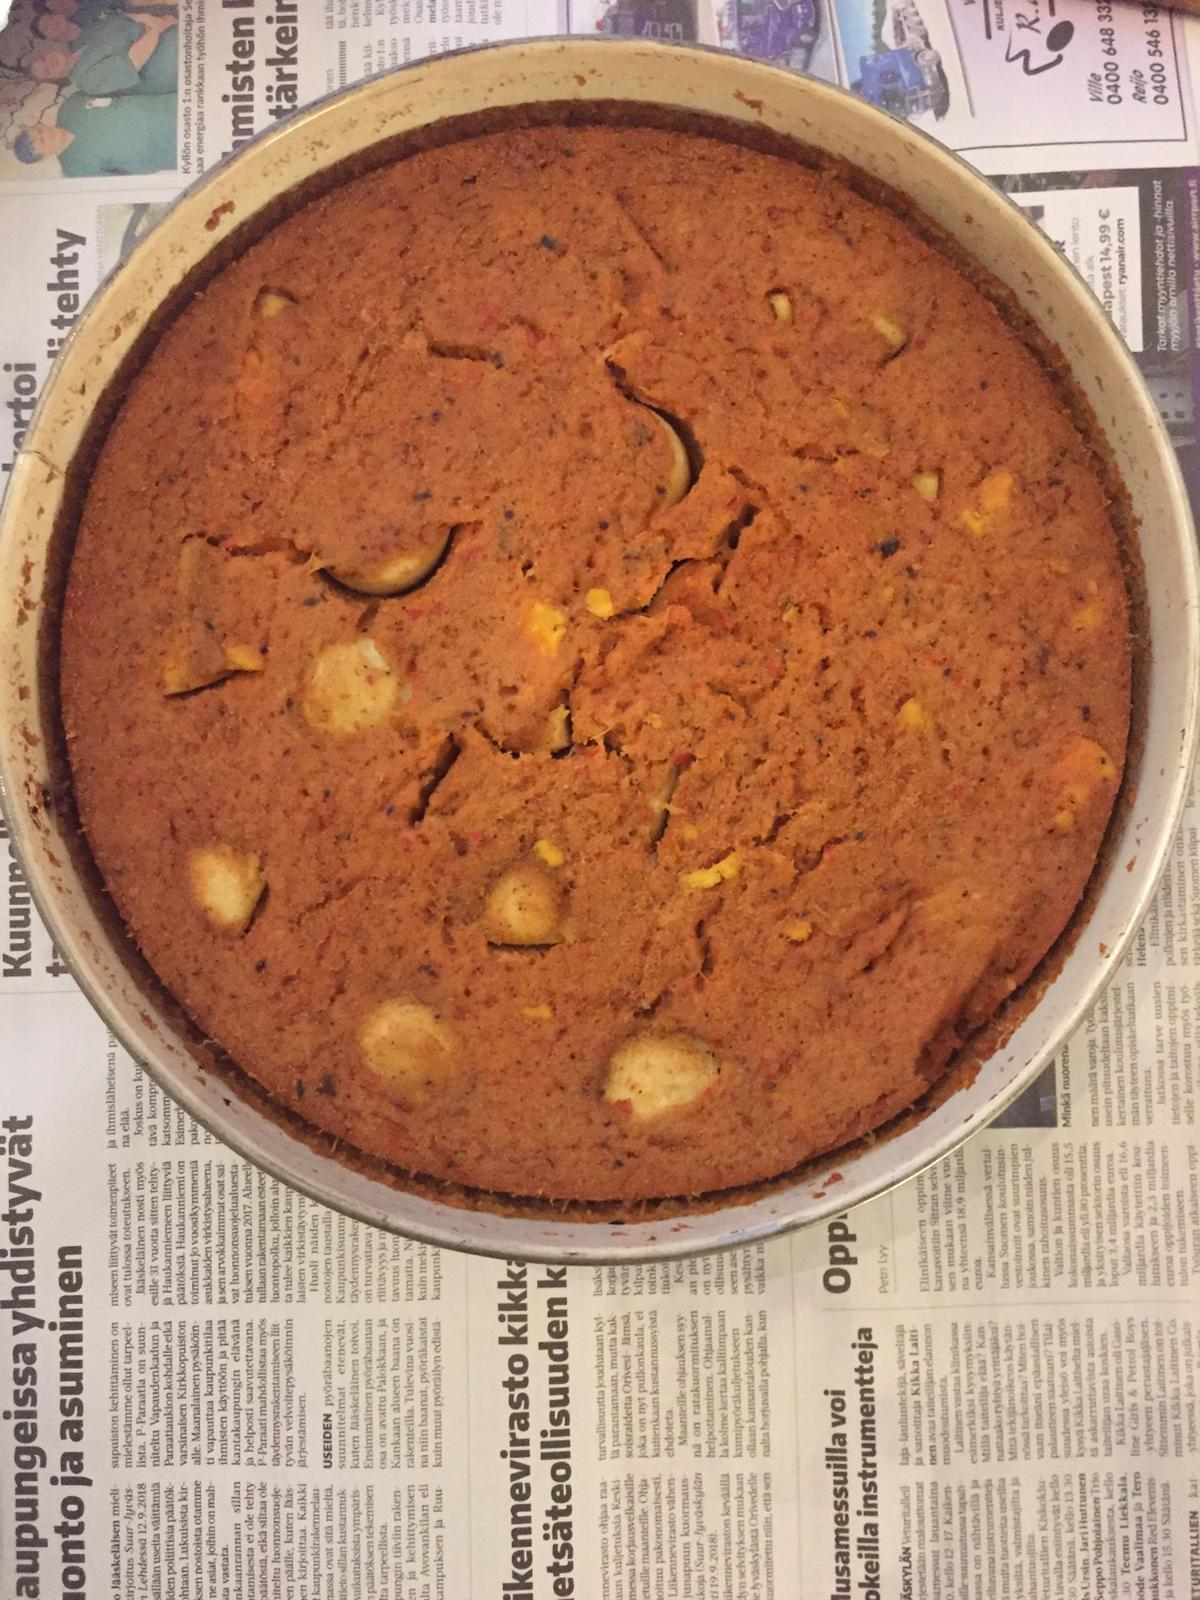 Baked beans cake with boiled eggs